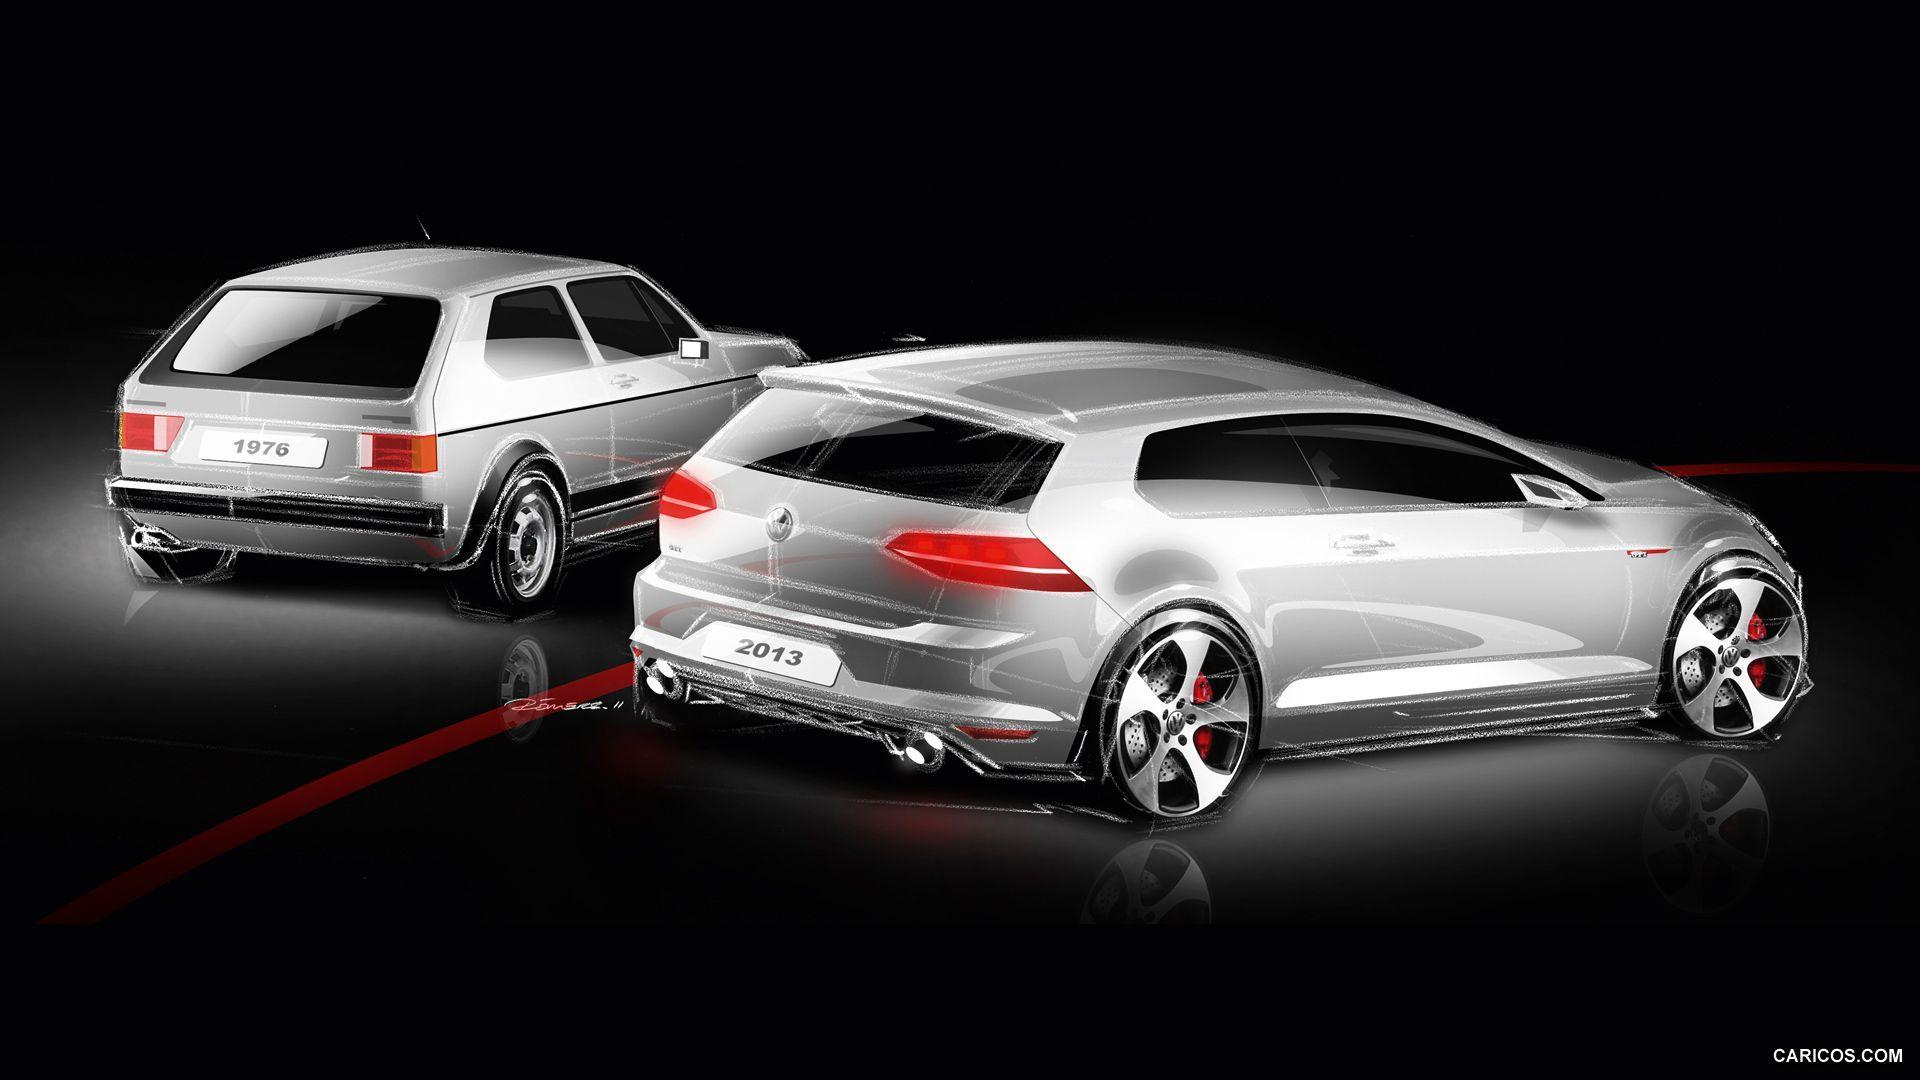 2015 Volkswagen Golf GTI VII Wallpaper | Volkswagen; Golf; GTI ...